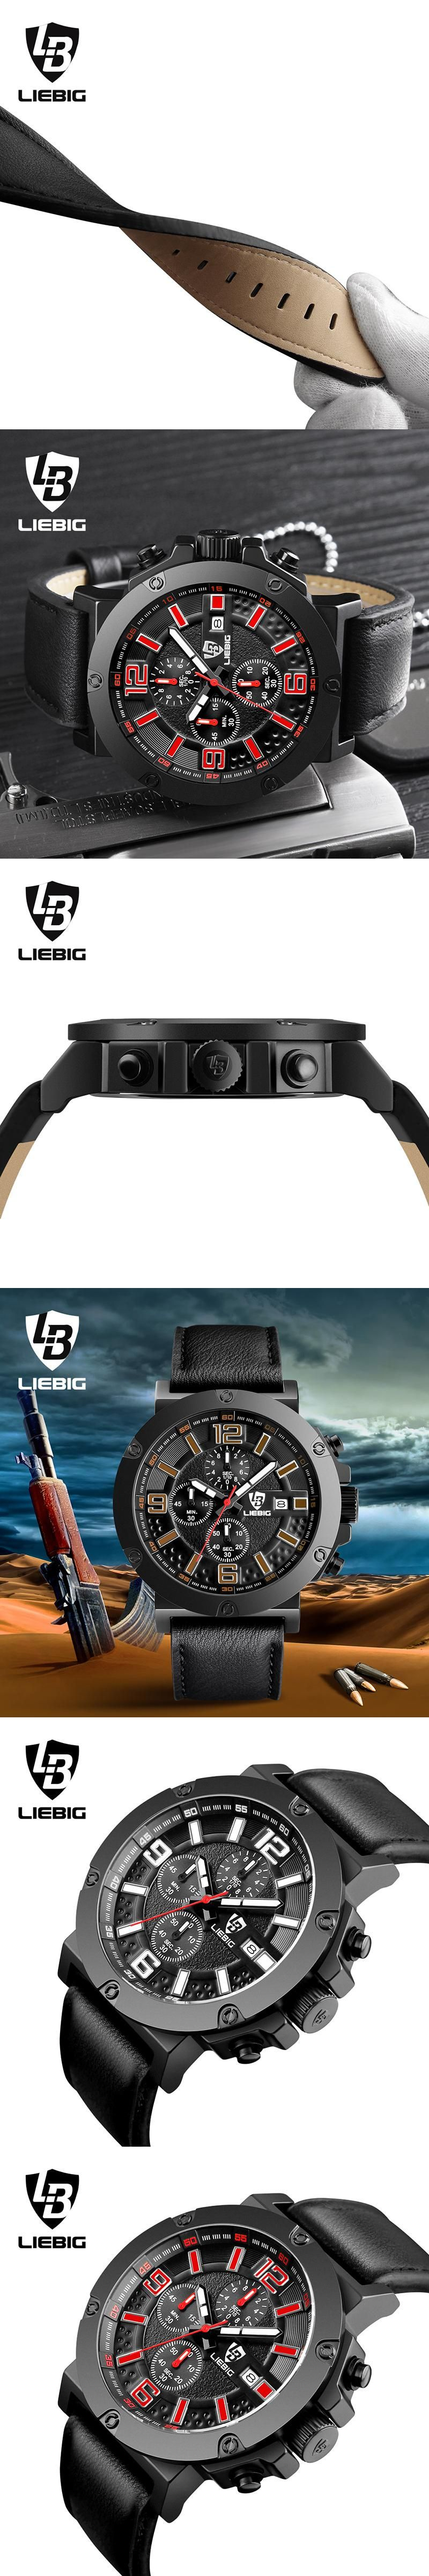 s classic watches waterproof dress casual analog men quartz watch wrist products mens simple big business face